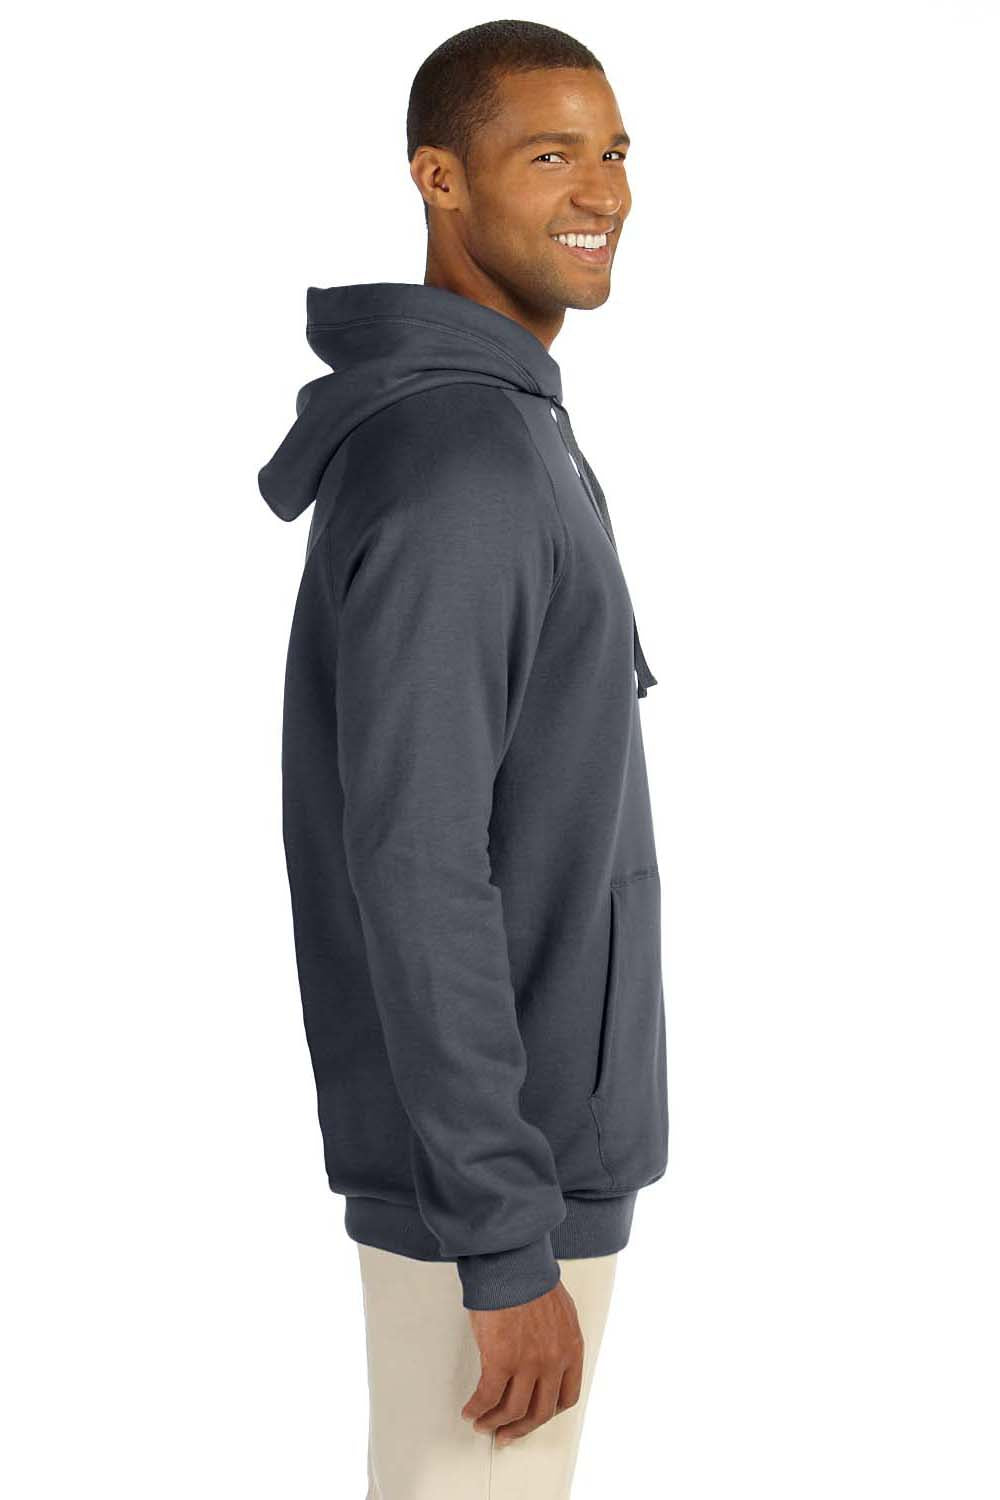 Hanes N270 Mens Nano Fleece Hooded Sweatshirt Hoodie Heather Charcoal Grey Side